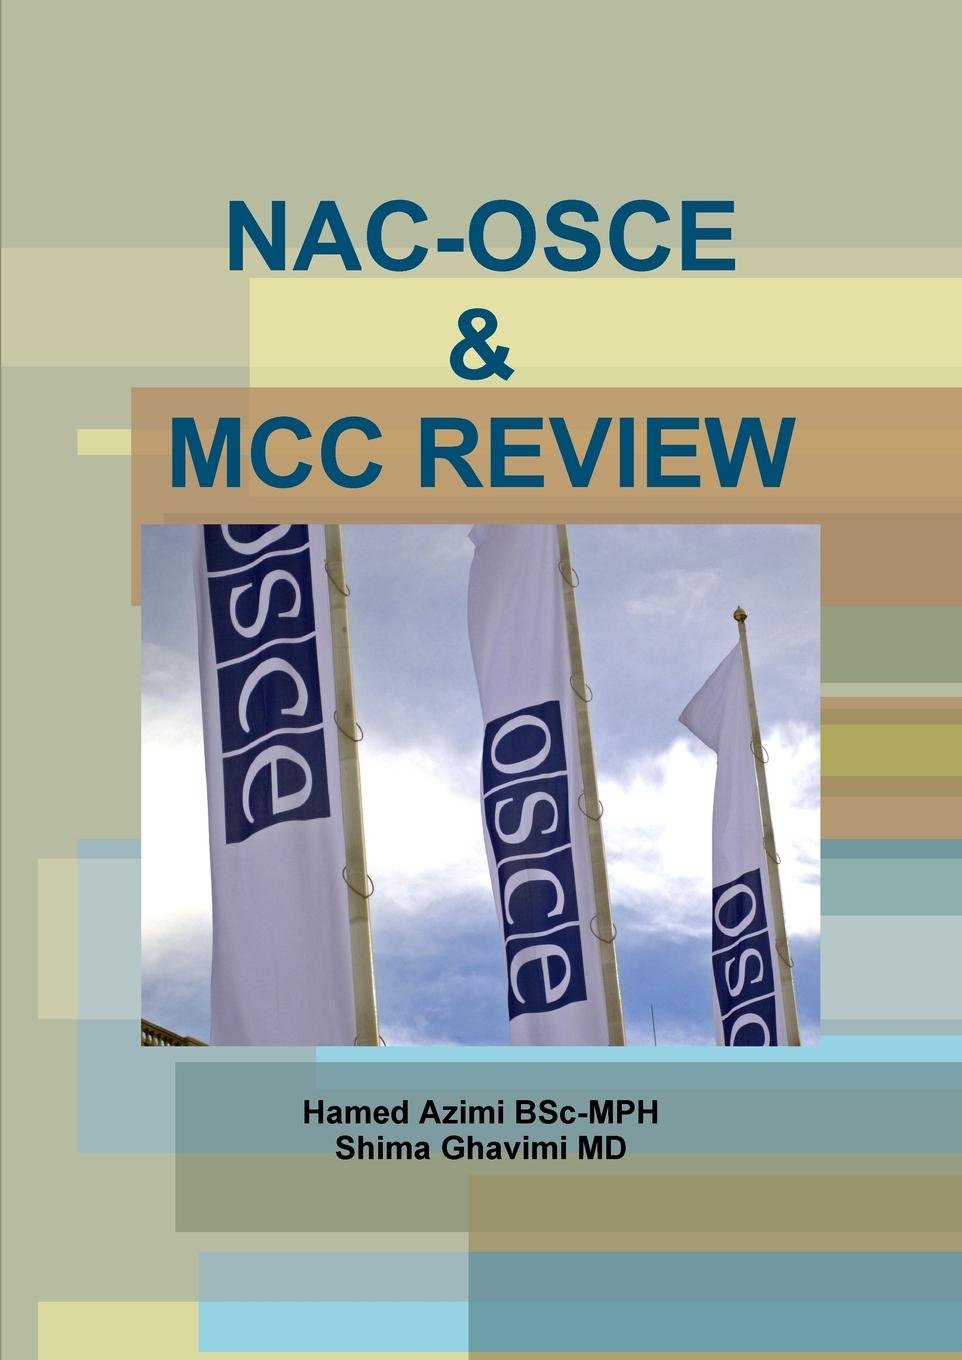 цена на Hamed Azimi, Shima Ghavimi MD NAC-OSCE . MCC REVIEW